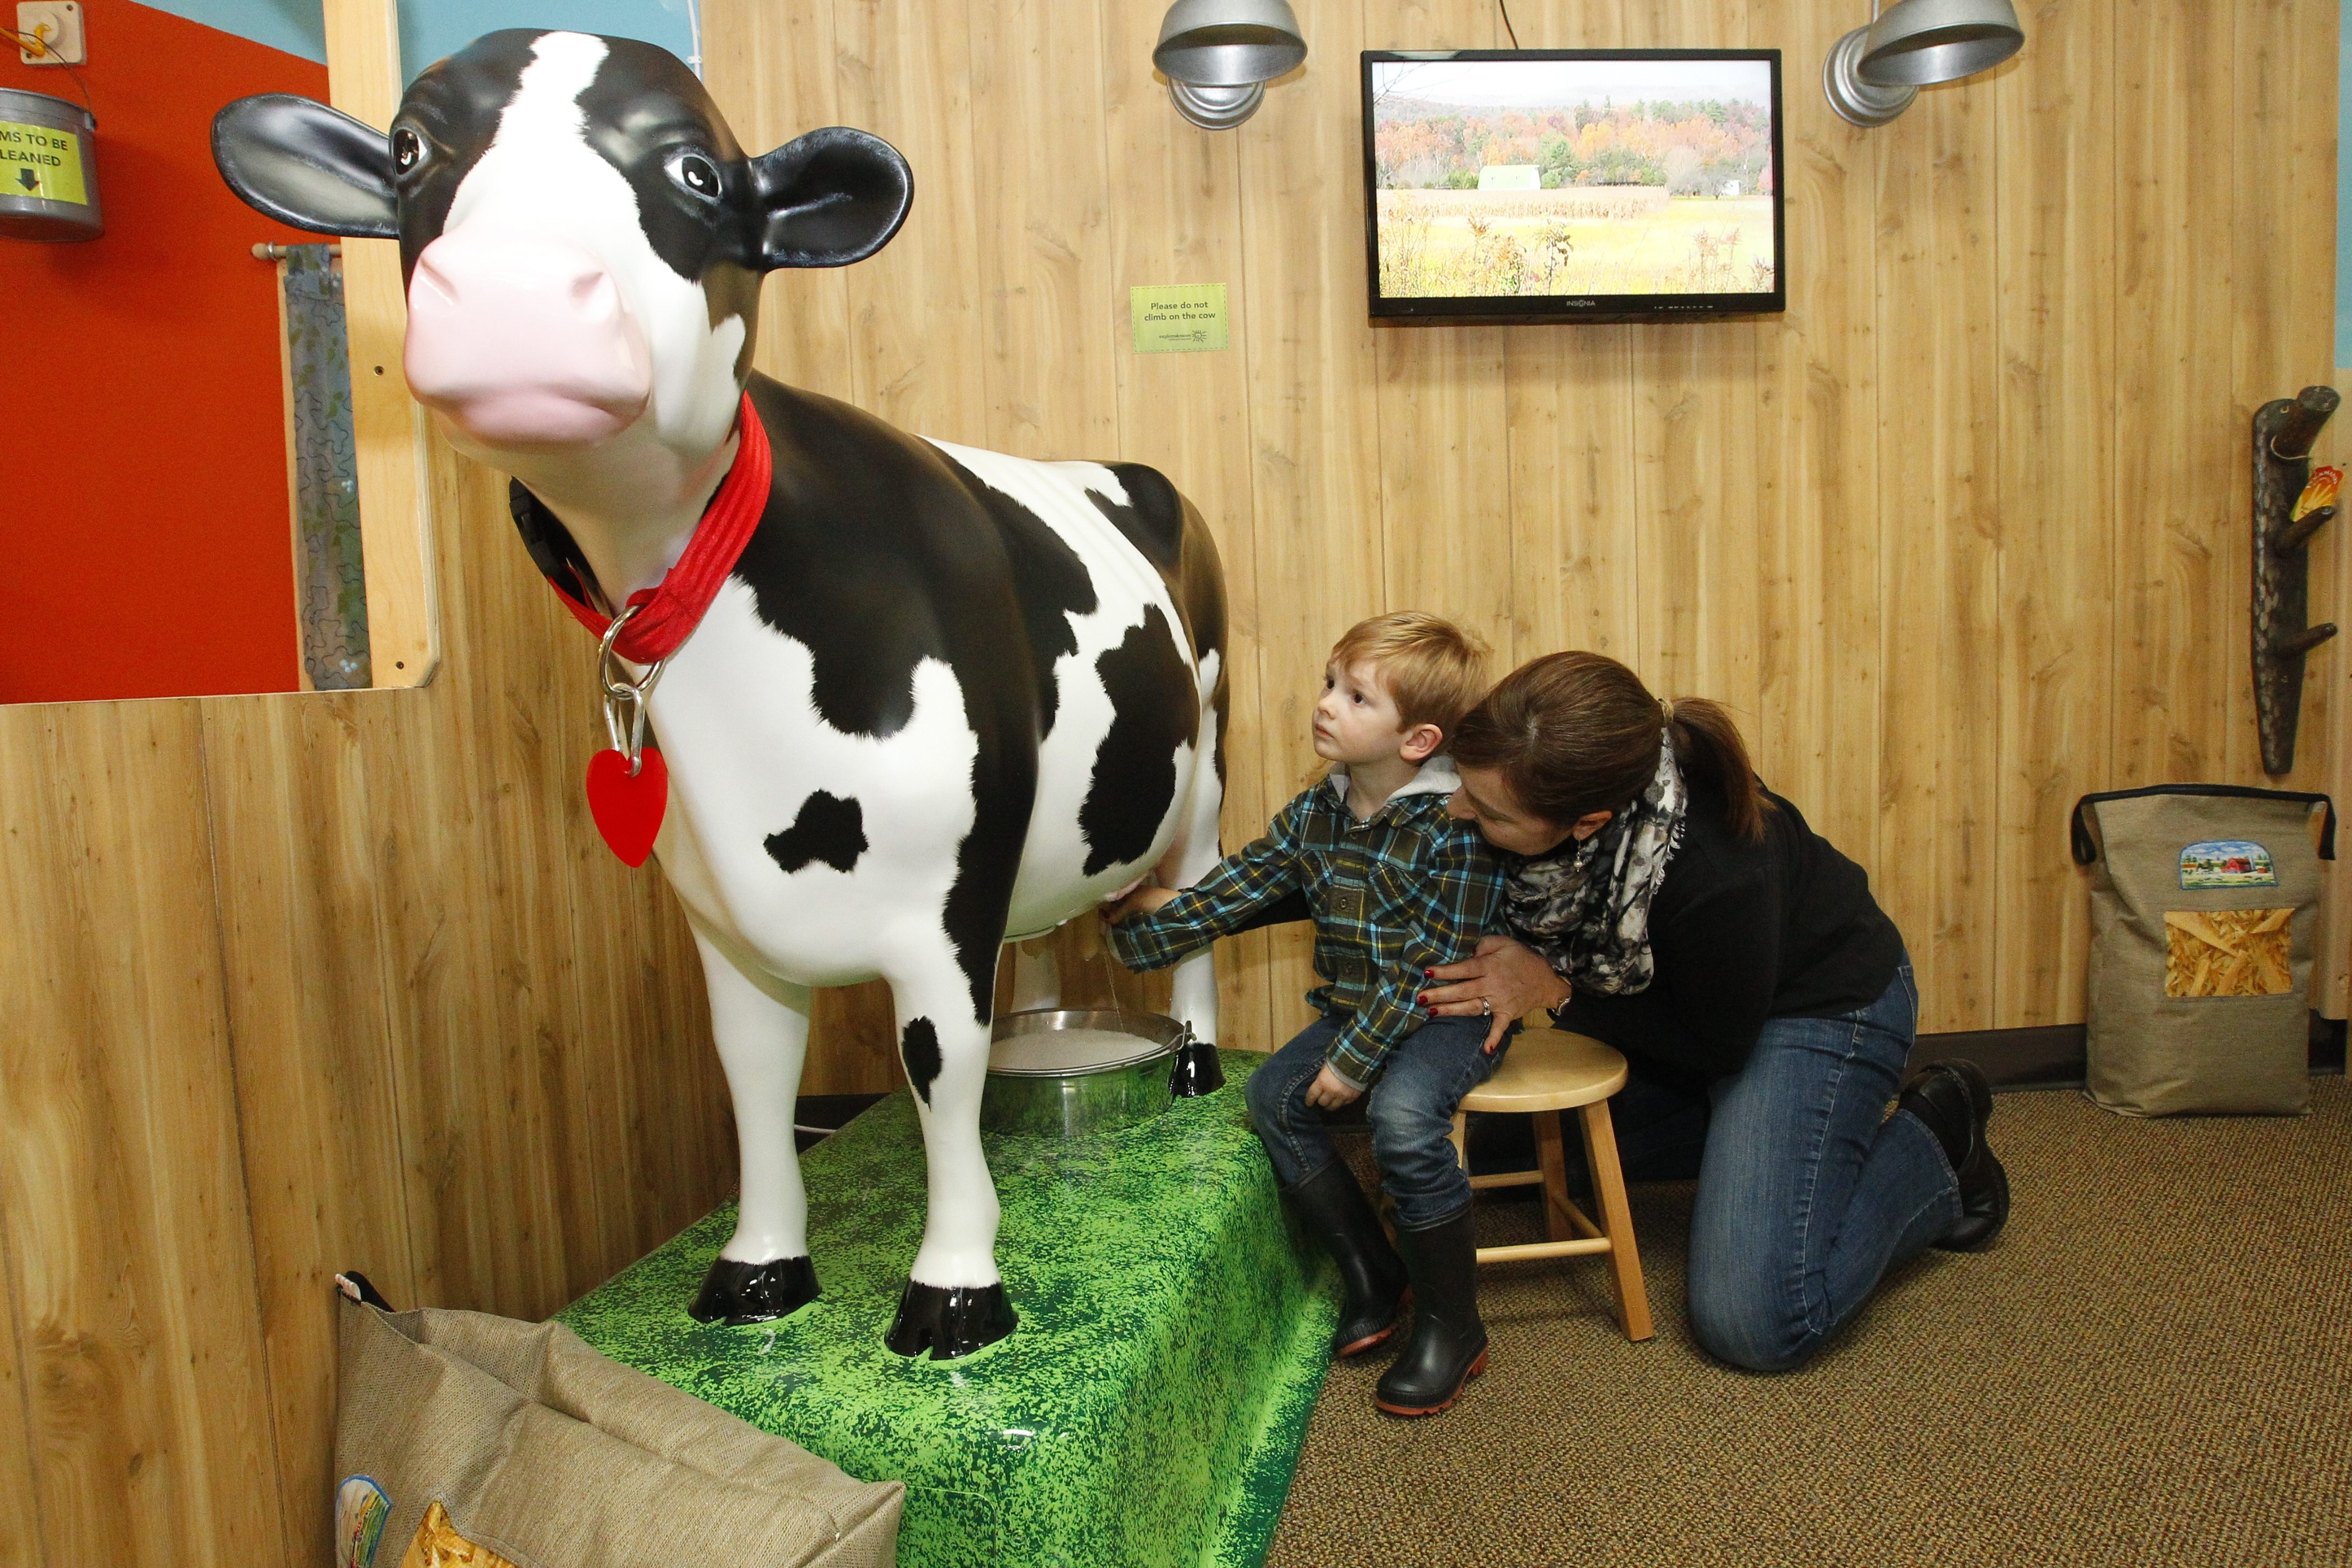 Jill Pawlik and her son Finnigan, 3, of Lancaster, learn how to milk a cow Friday at Explore & More in East Aurora. The children's museum is offering family activities in the coming week.